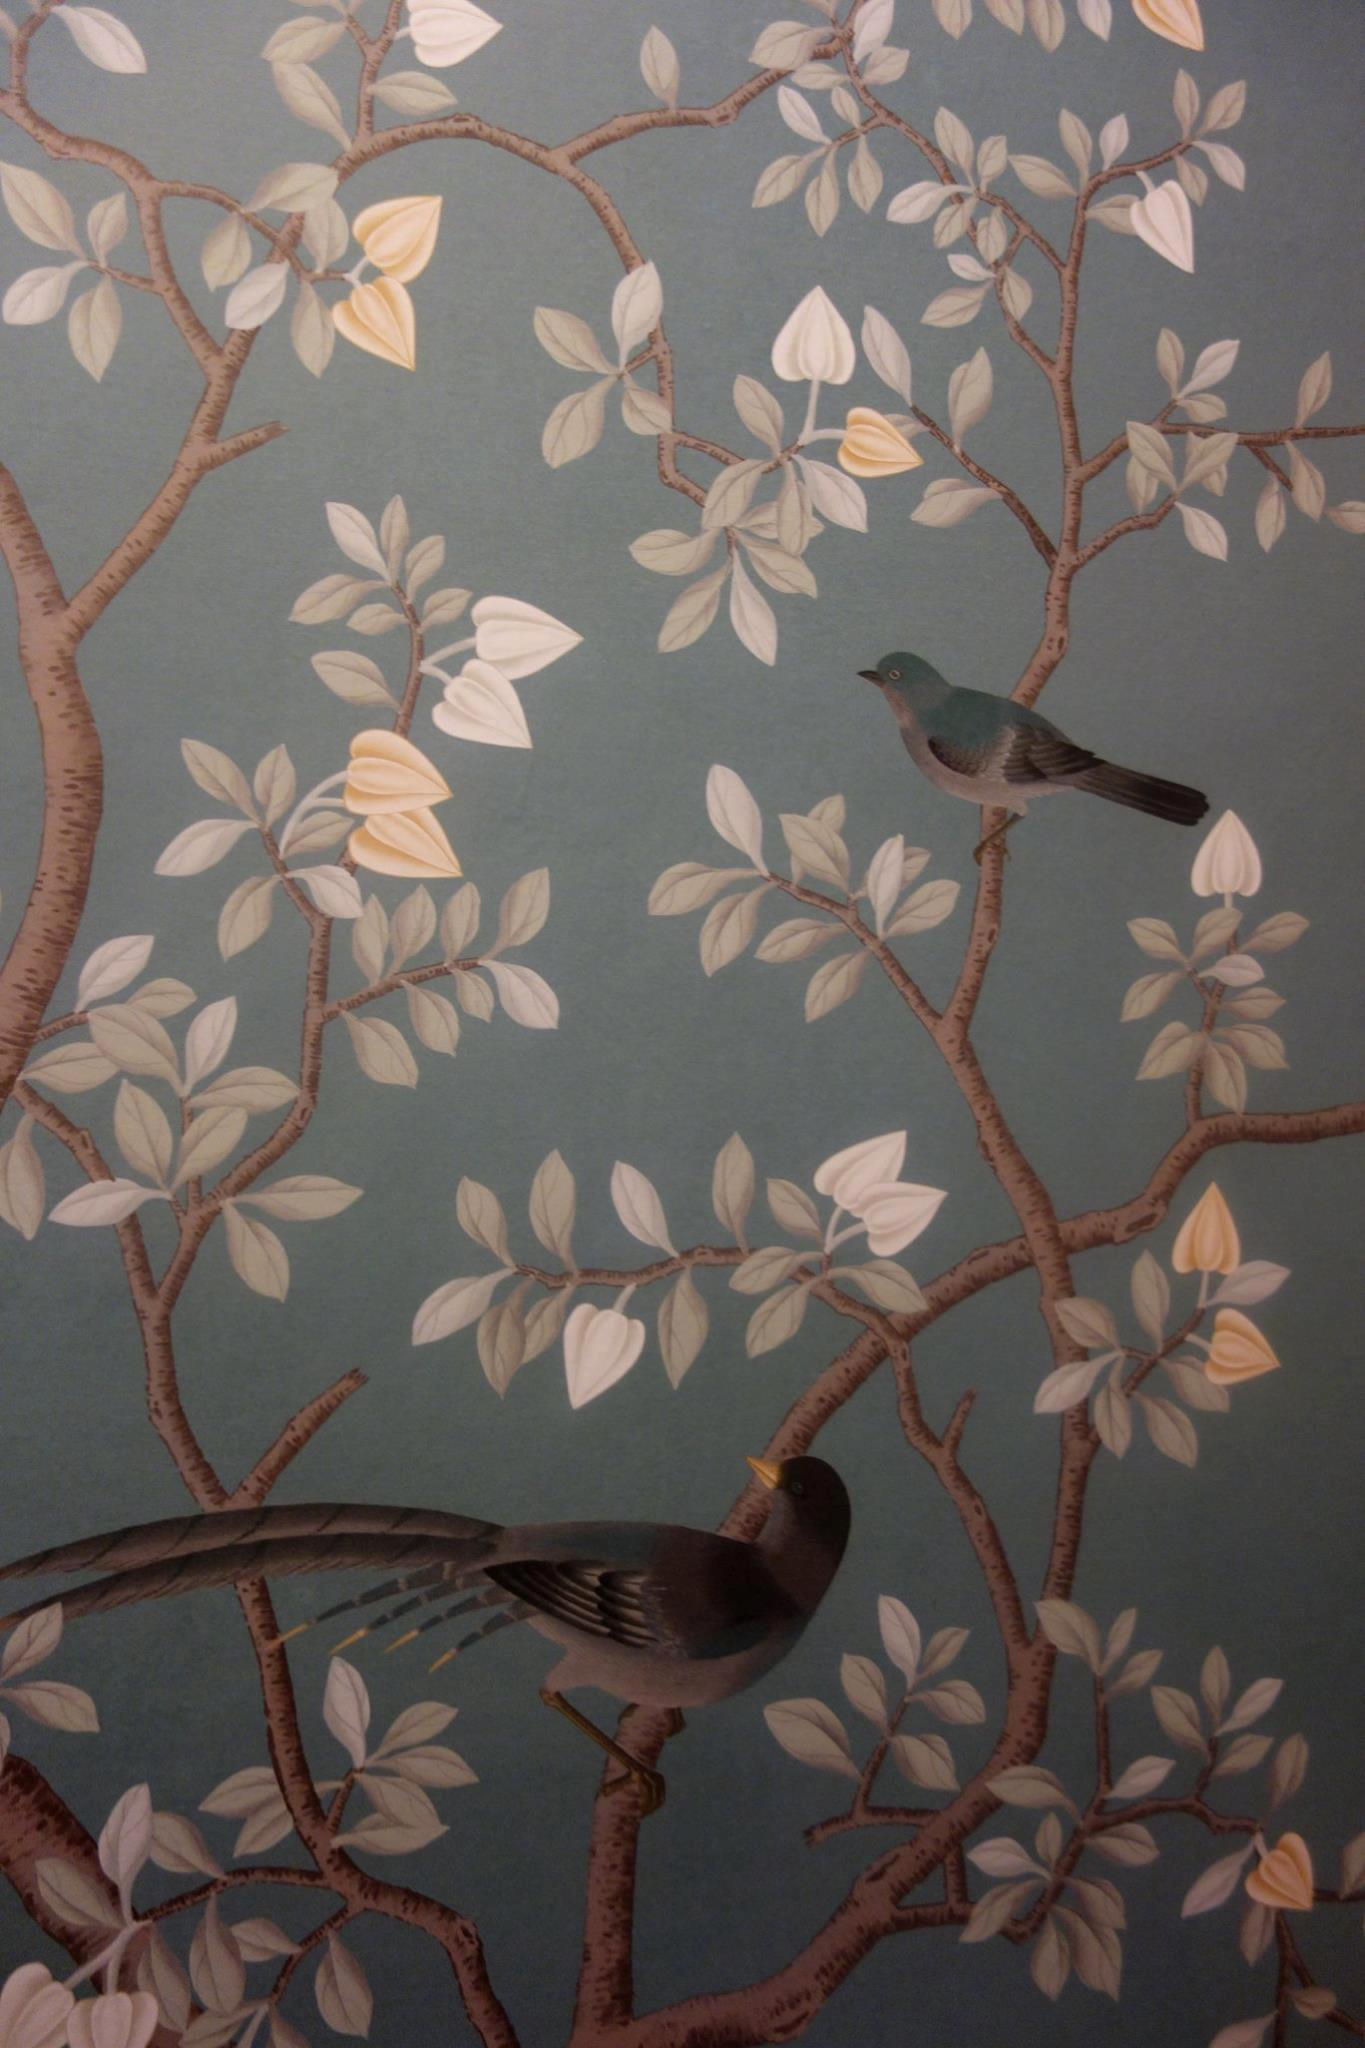 Luxury Wallpaper Archives - The